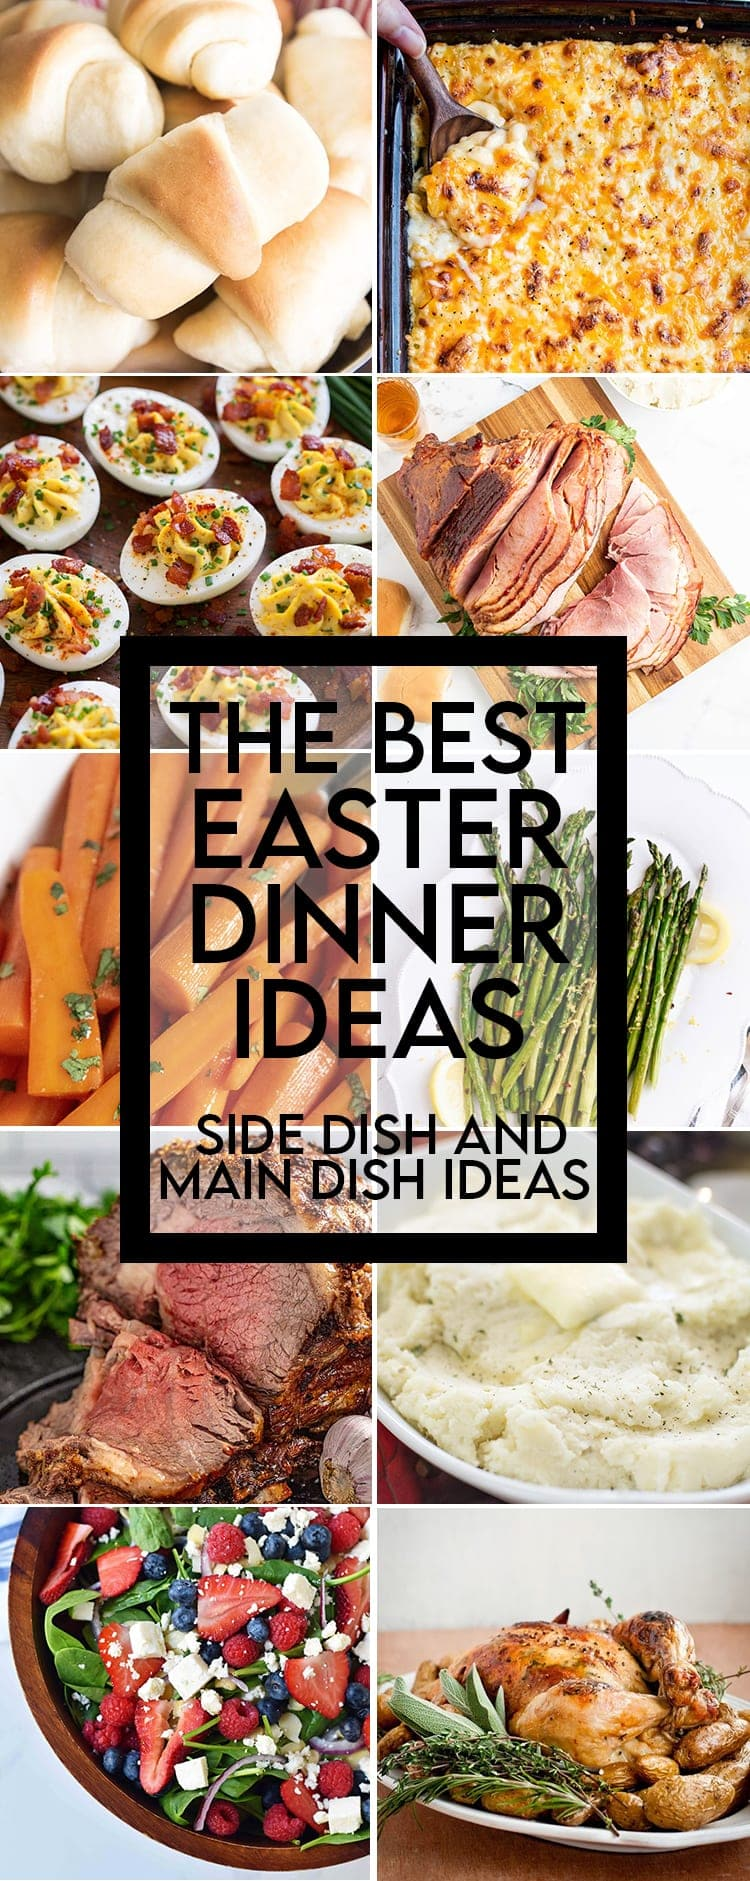 A collage of Easter dinner ideas, sides and mains with a text overlay for pinterest.